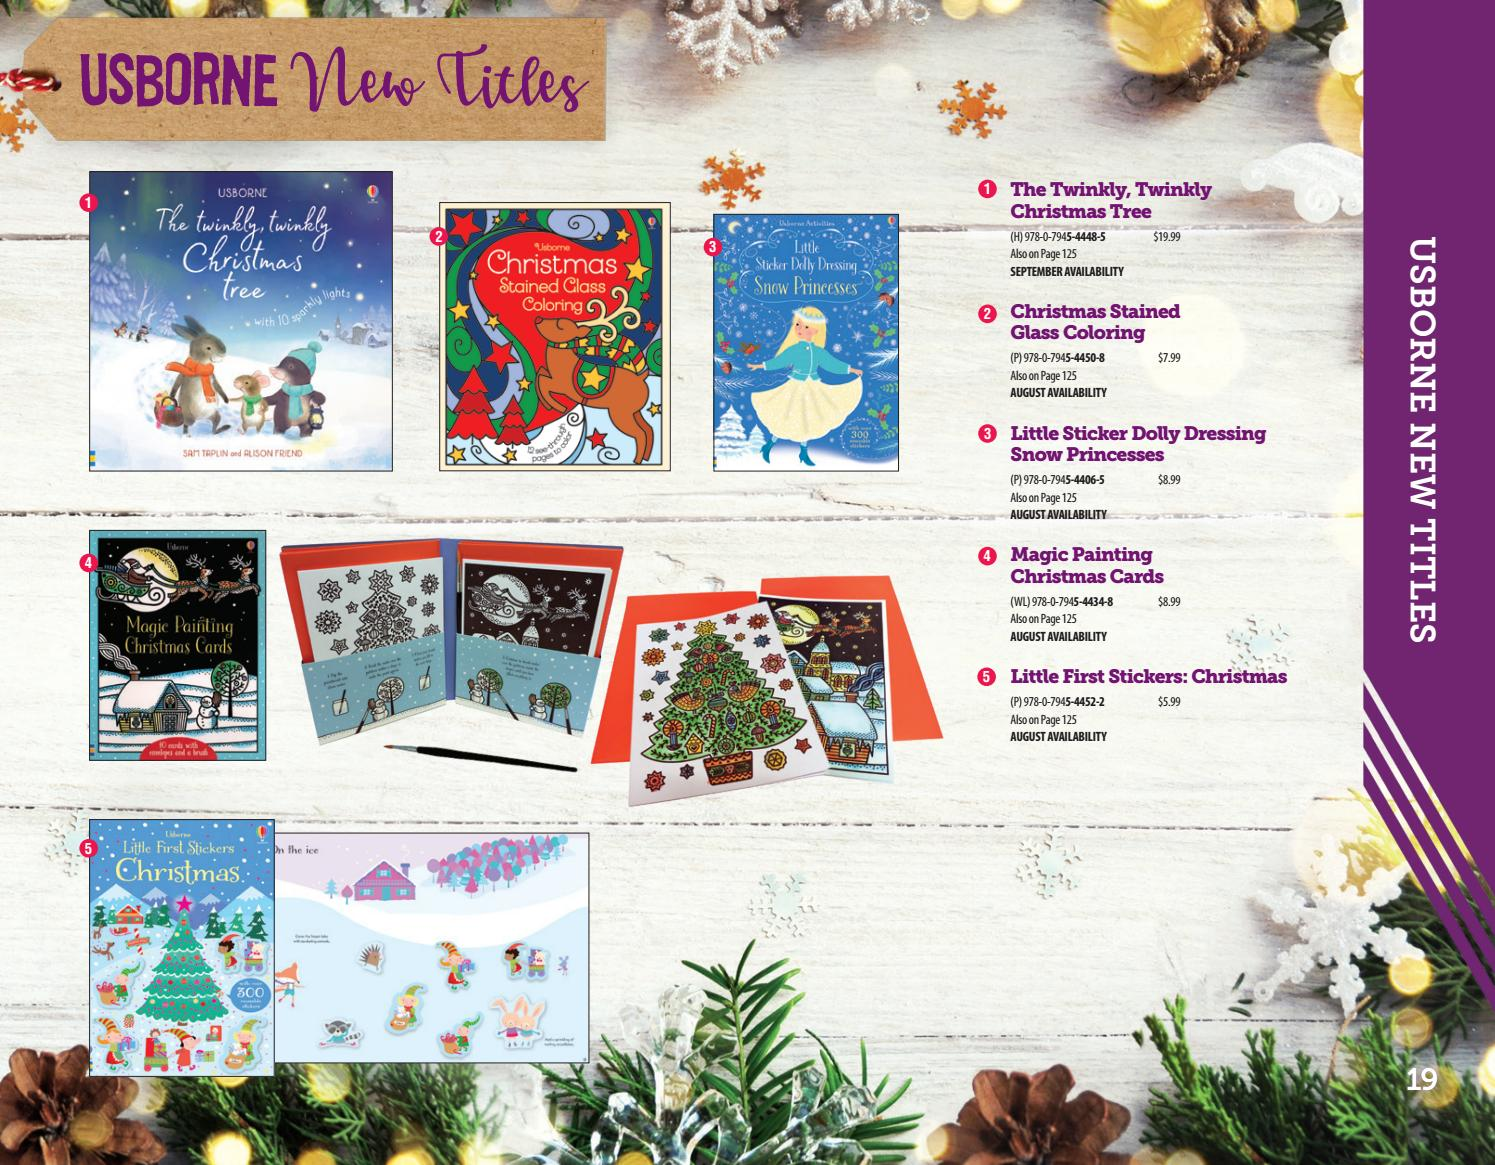 Christmas Stained Glass Coloring Usborne With Books More Fall 2018 Full Catalog By